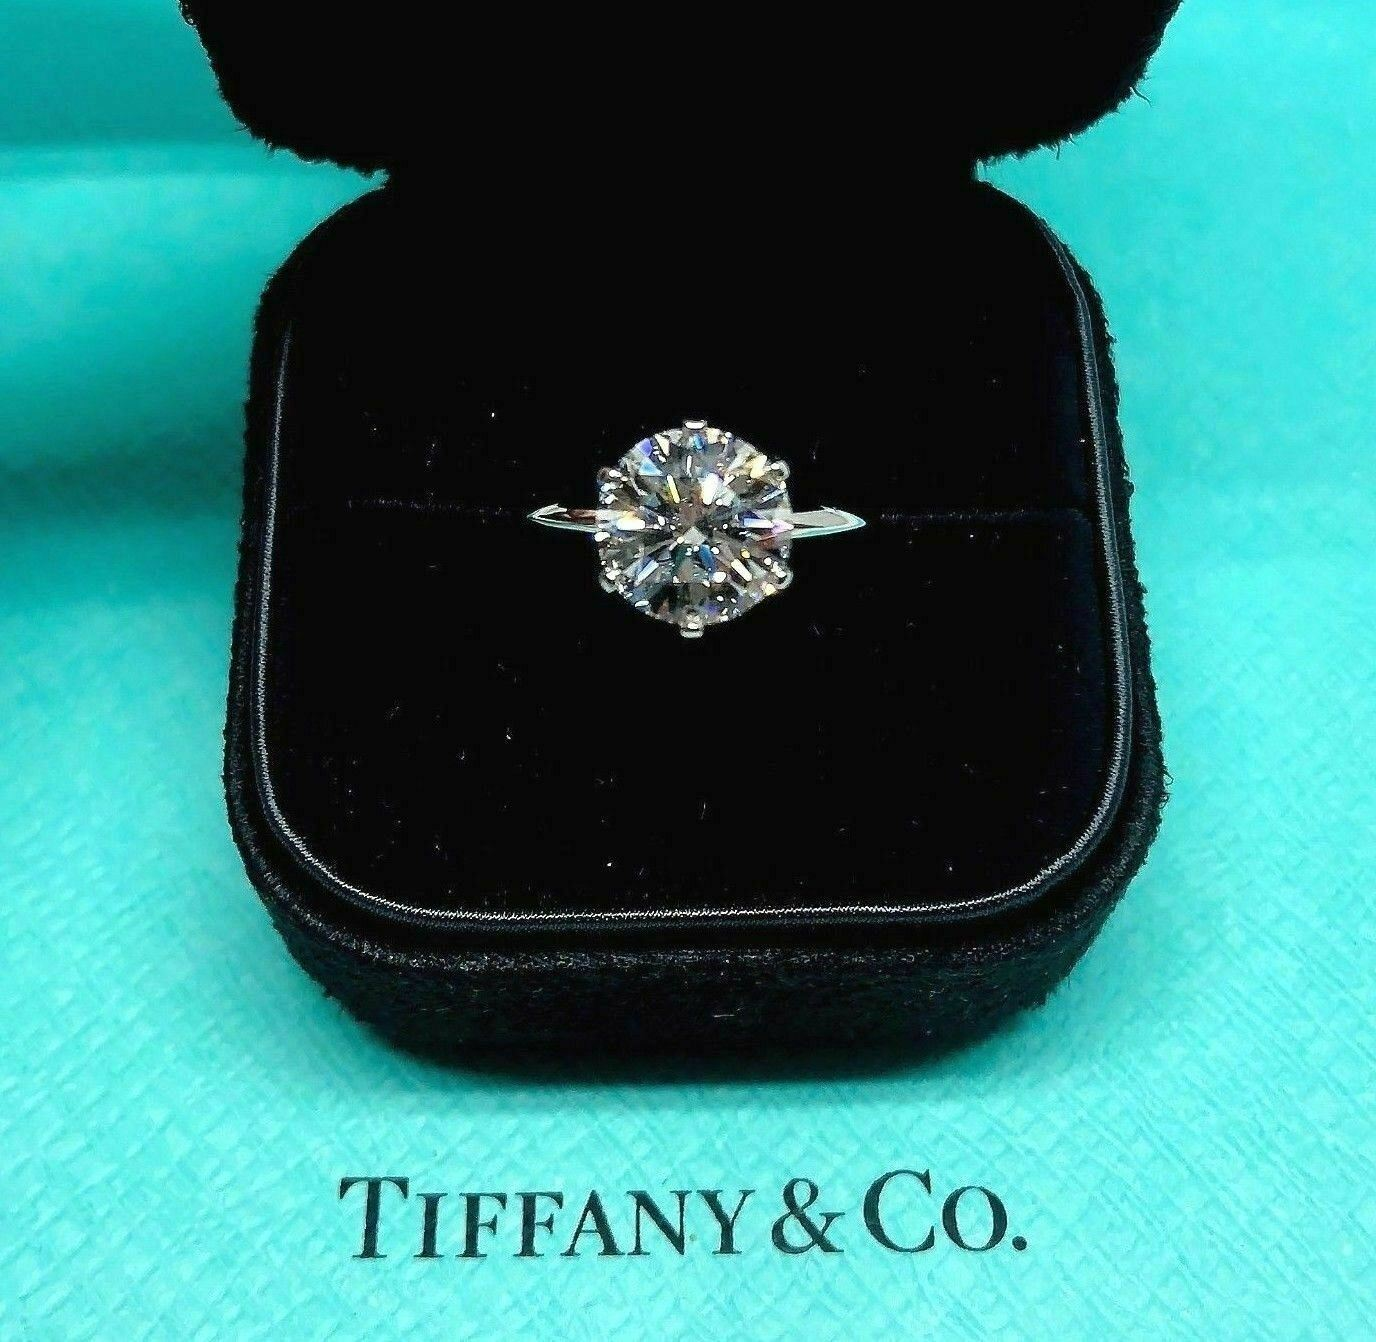 Tiffany & Co. 2.75 Carats E VS1 Round Diamond Platinum Solitaire Ring